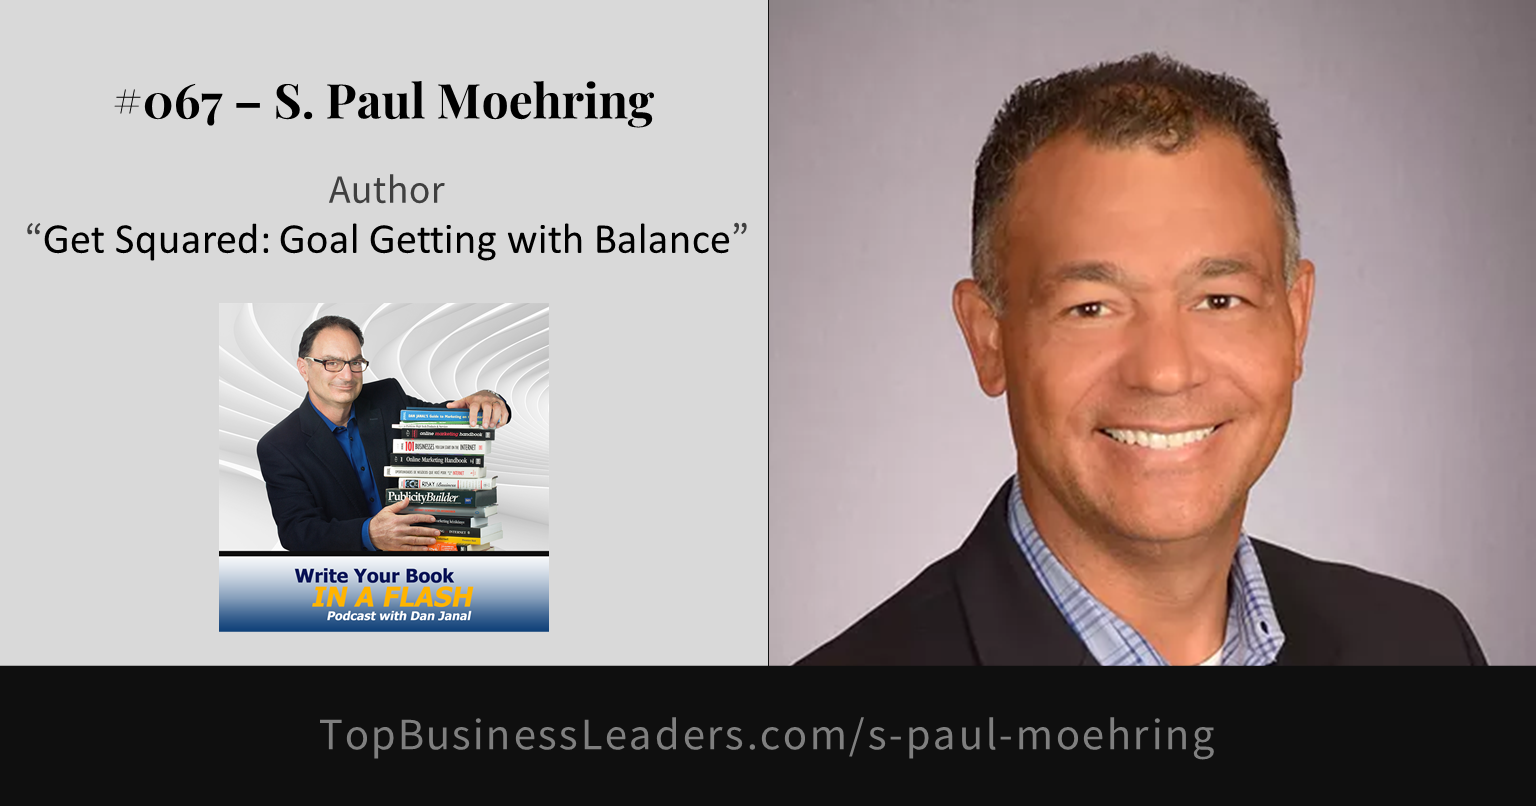 s-paul-moehring-author-get-squared-goal-getting-with-balance